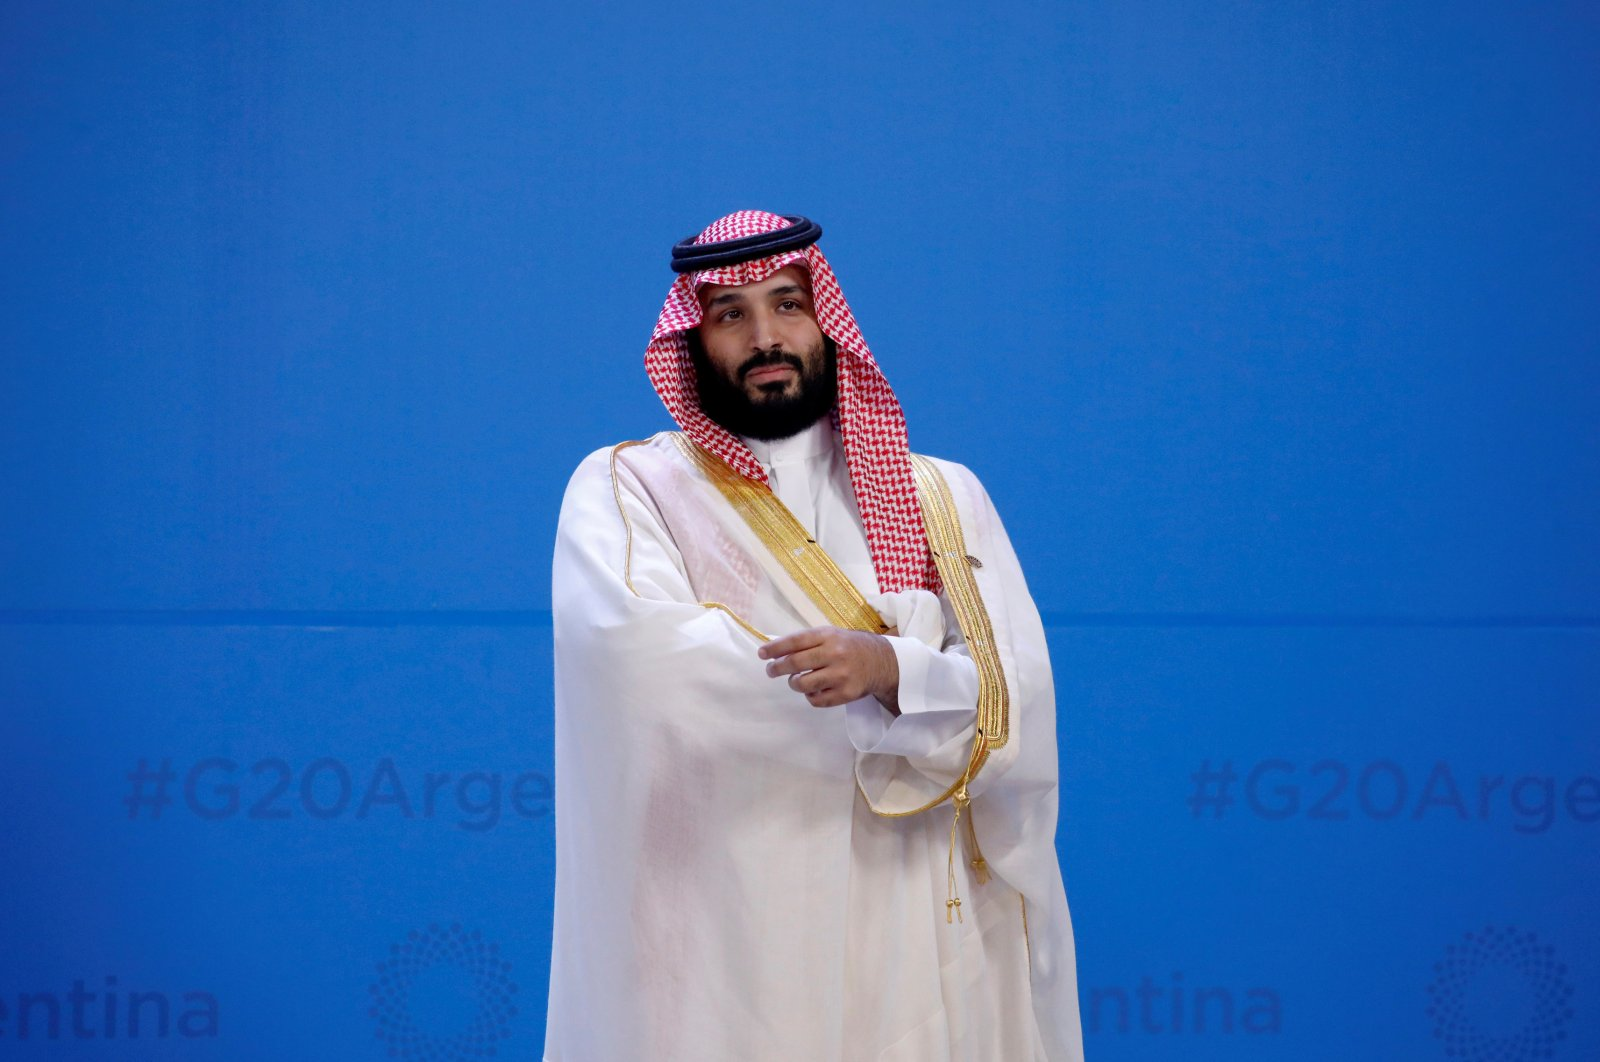 Saudi Arabia's Crown Prince M. bin Salman waits for the family photo during the G20 summit in Buenos Aires, Argentina, Nov. 30, 2018. (Reuters Photo)